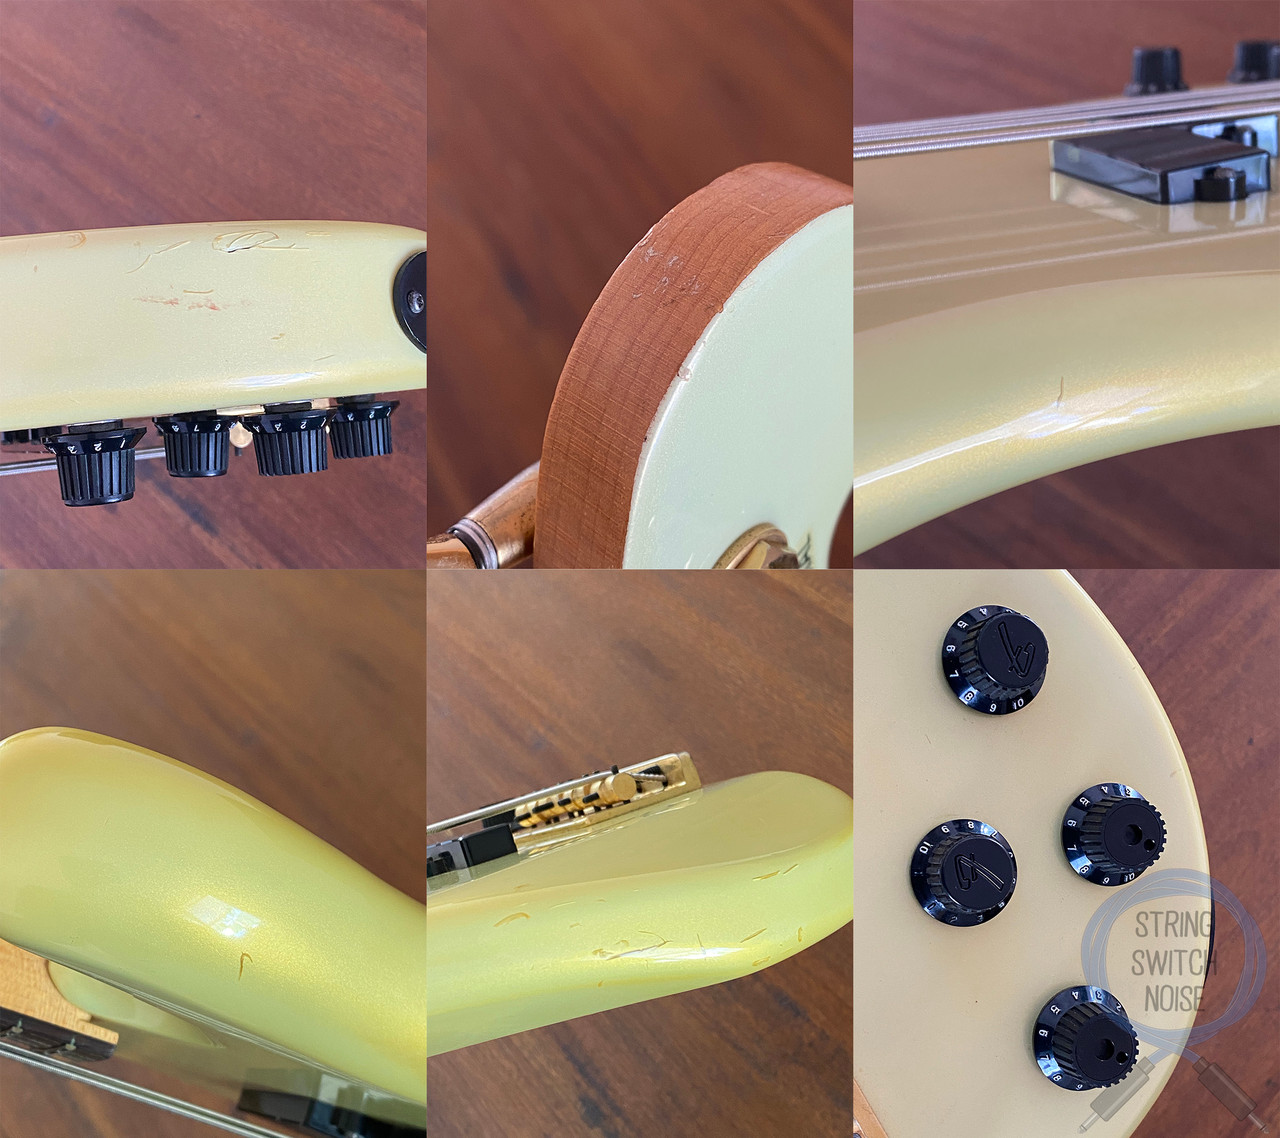 Fender Jazz Bass, Special, Active, P/J, Gold, 1984, Medium Scale, Rare Find